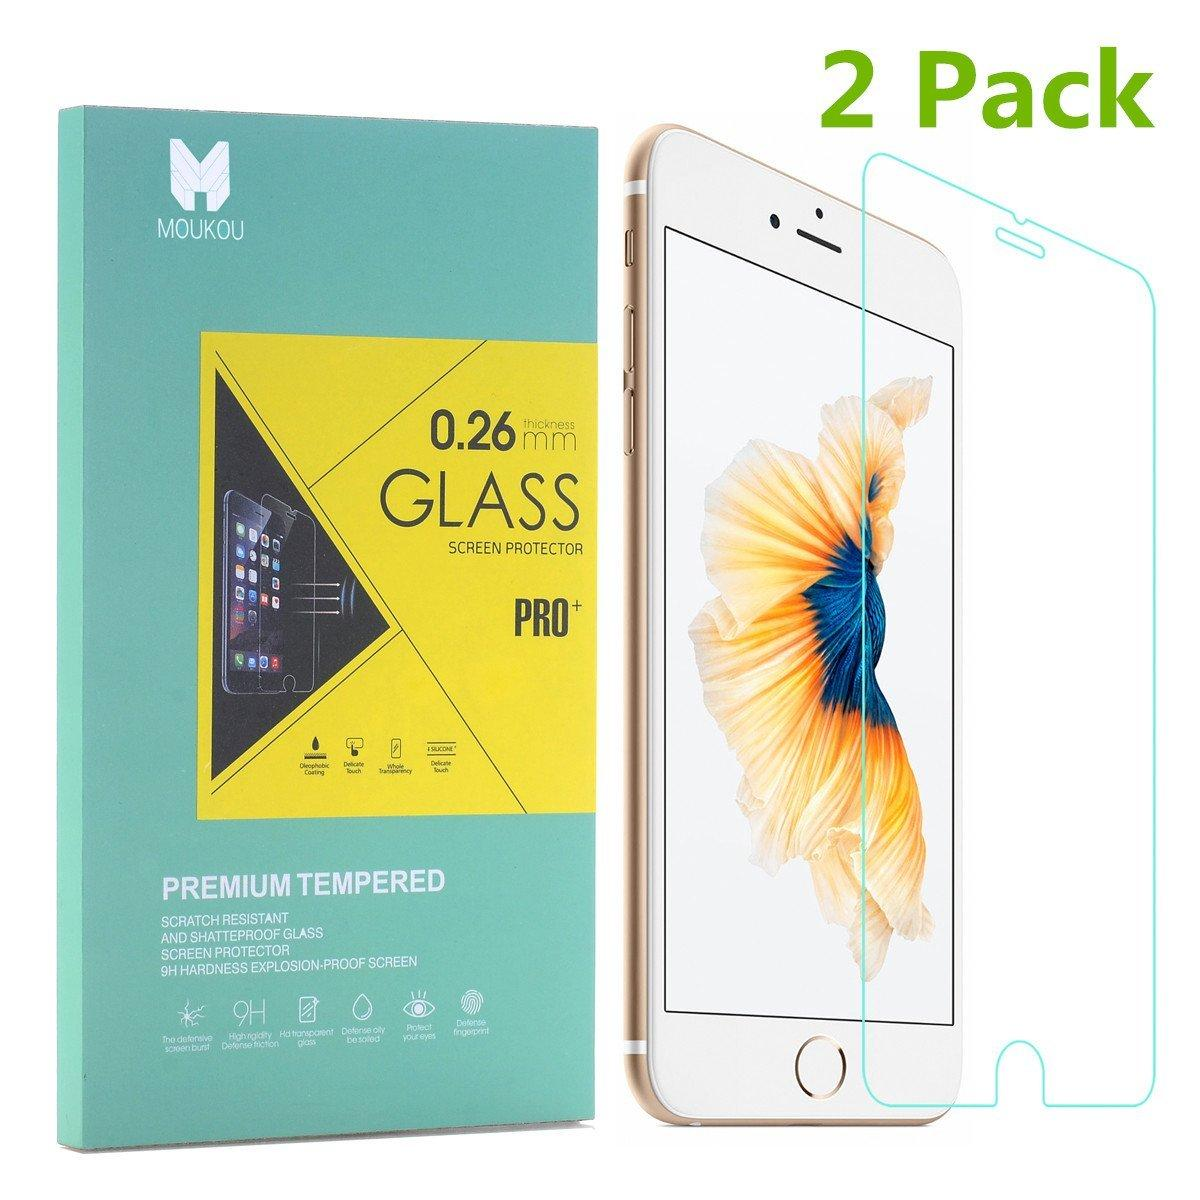 MouKou iPhone 7/7Plus  Screen Protector Tempered Glass Screen Protectors 3-Pack Rounded Edges for iPhone 6/6s 4.7